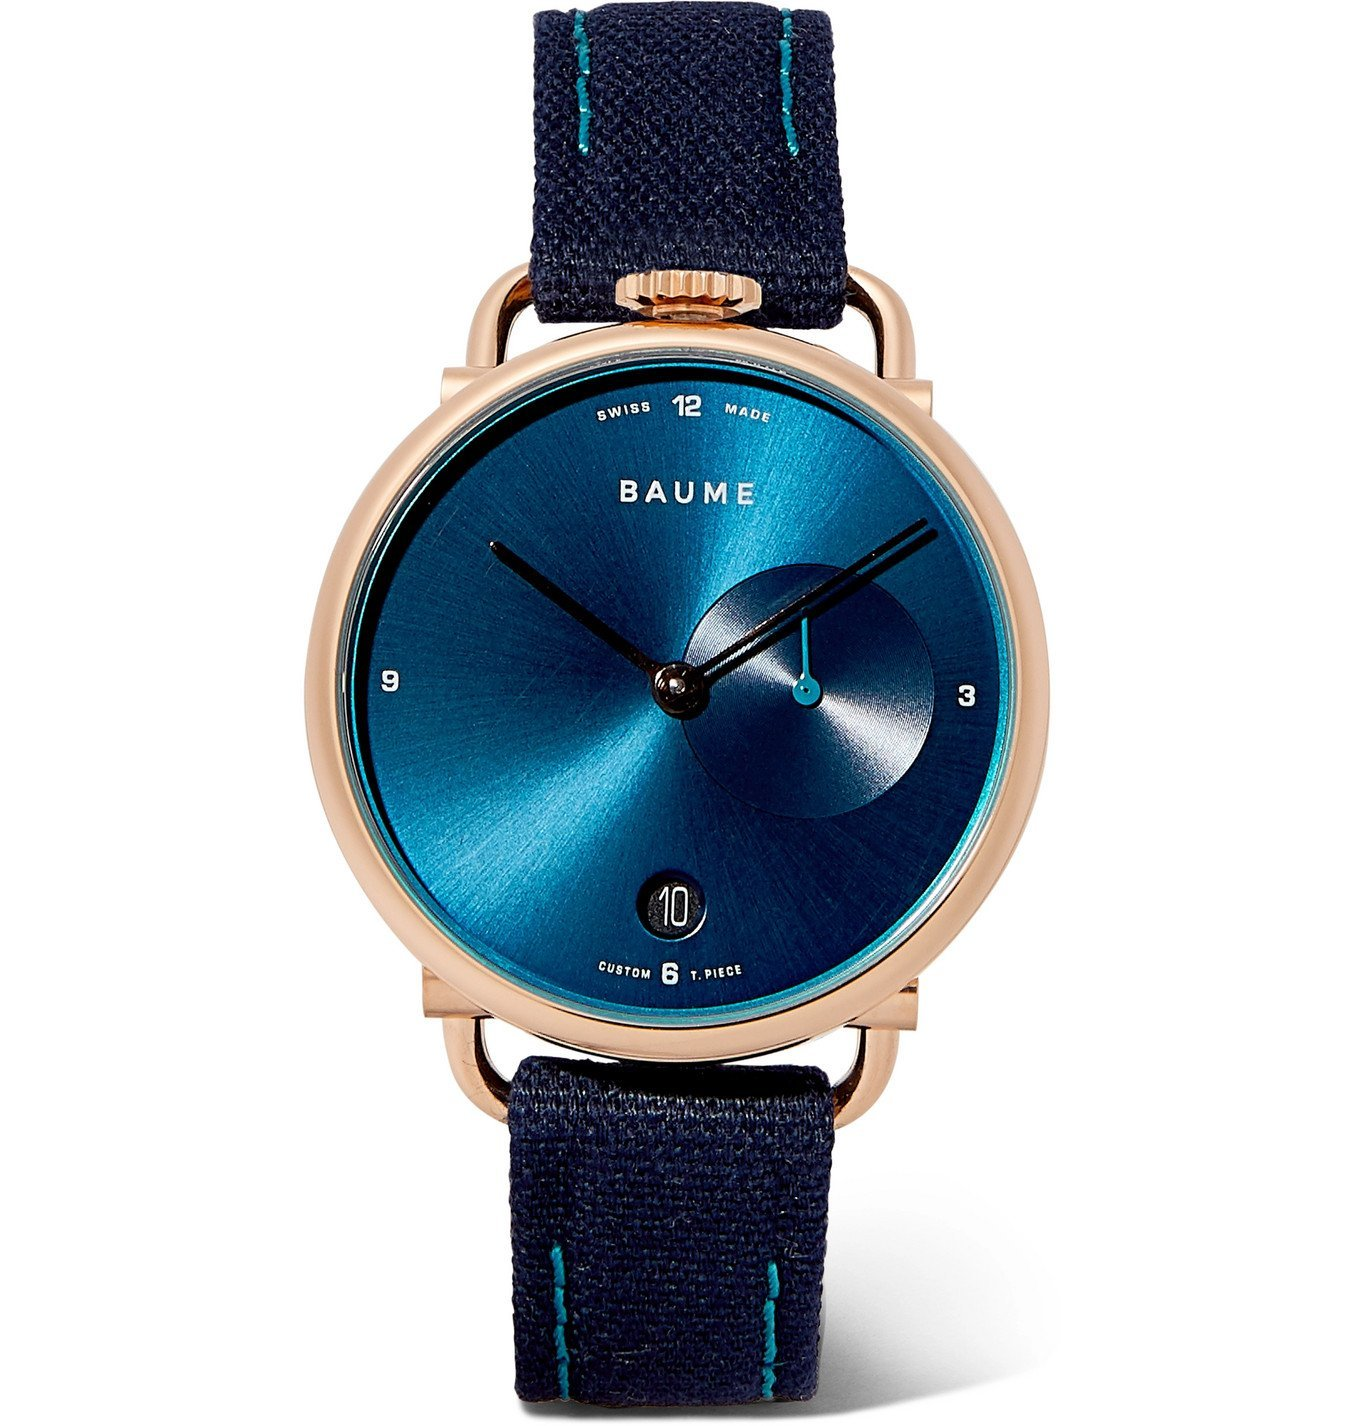 Photo: Baume - 35mm PVD-Coated Stainless Steel and Cotton-Canvas Watch, Ref. No. 10603 - Blue